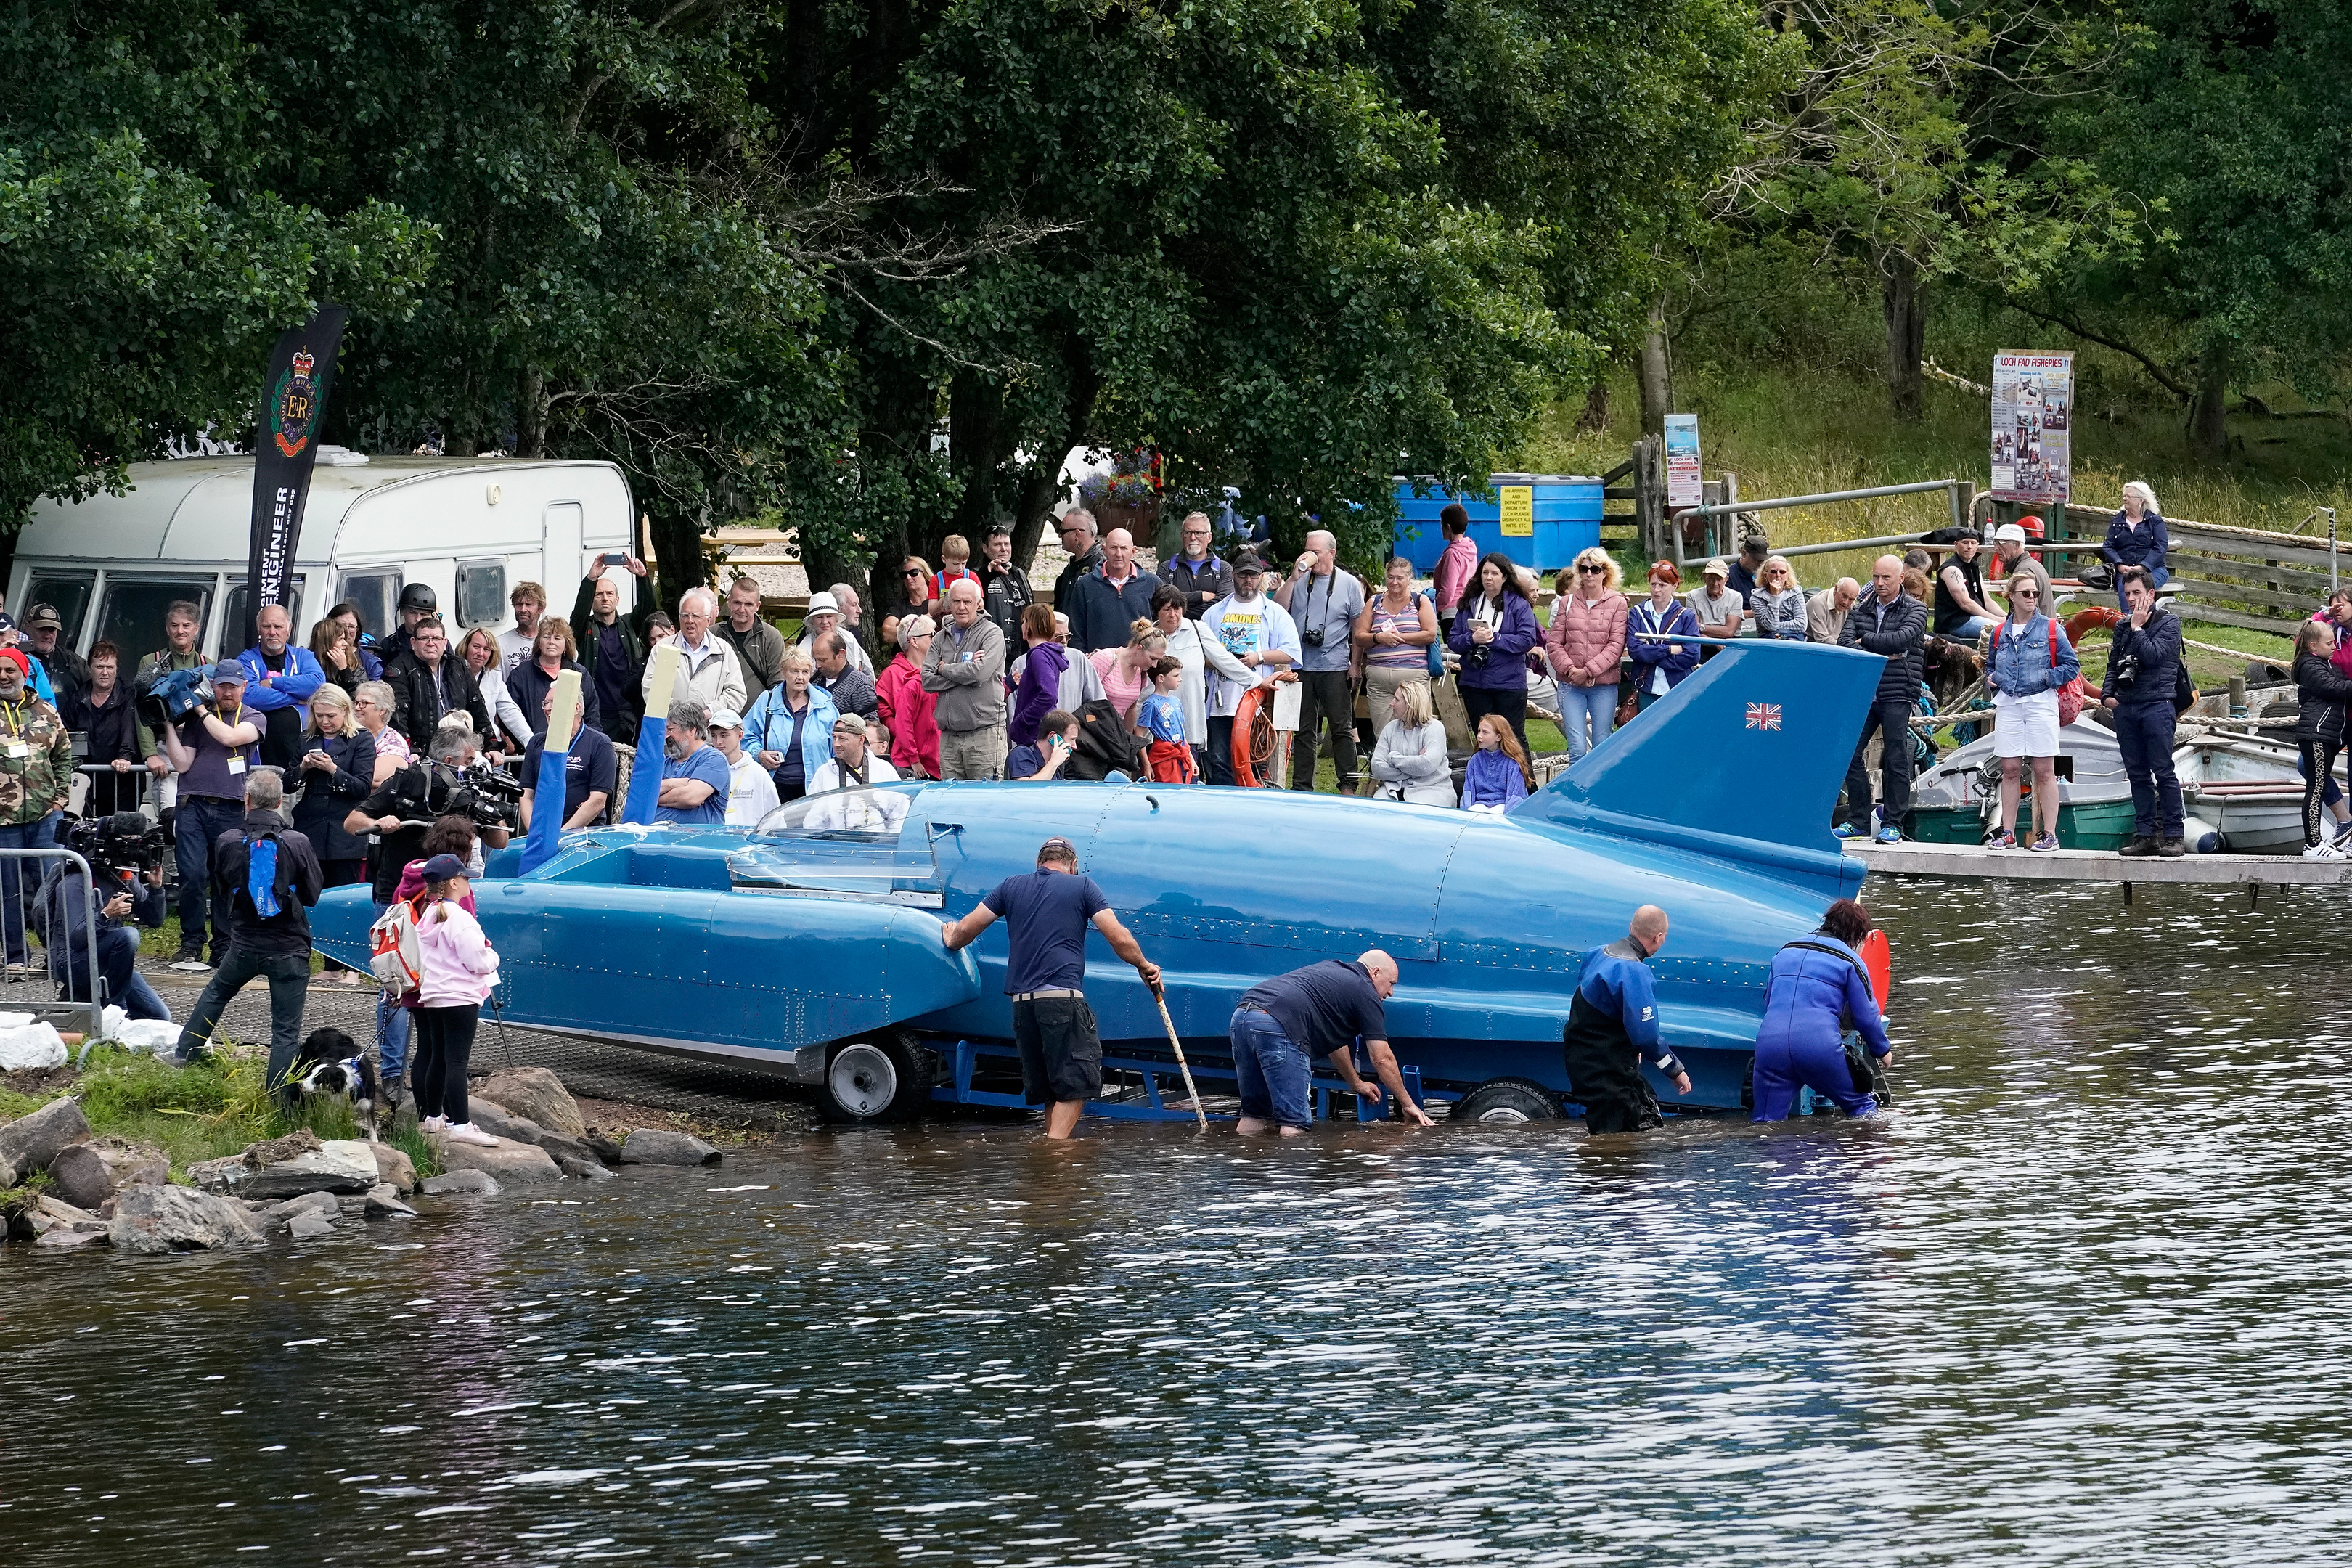 The first attempt at re-floating Donald Campbell's iconic Bluebird takes place on the waters of Loch Fad (Christopher Furlong/Getty Images)